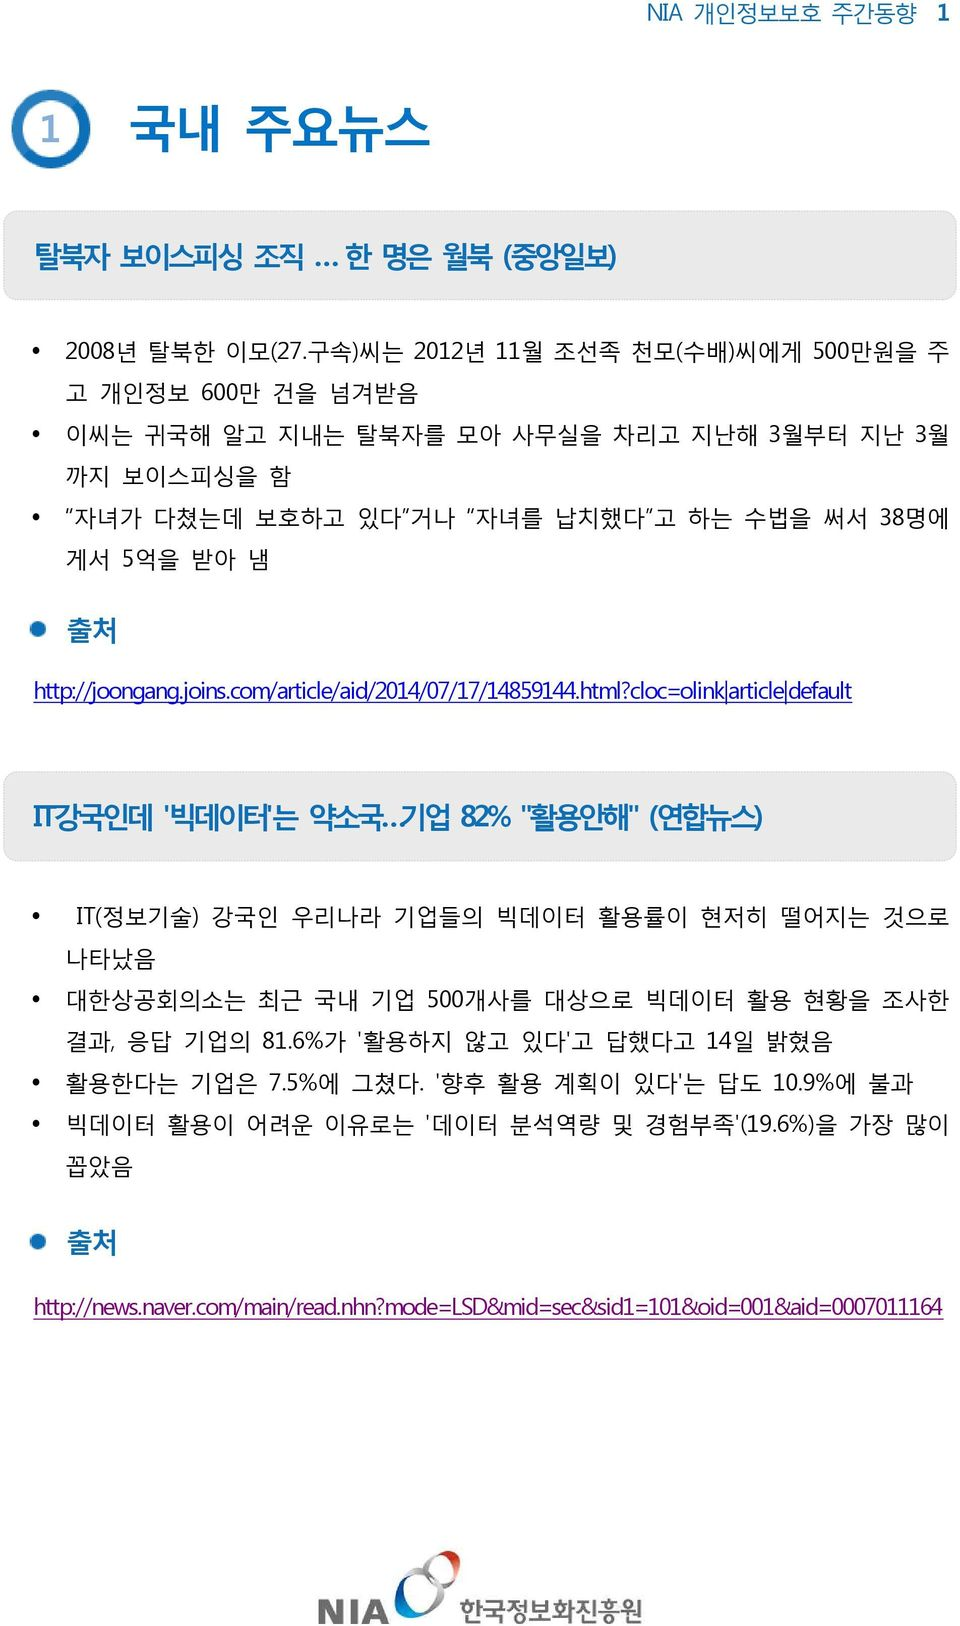 http://joongang.joins.com/article/aid/2014/07/17/14859144.html?